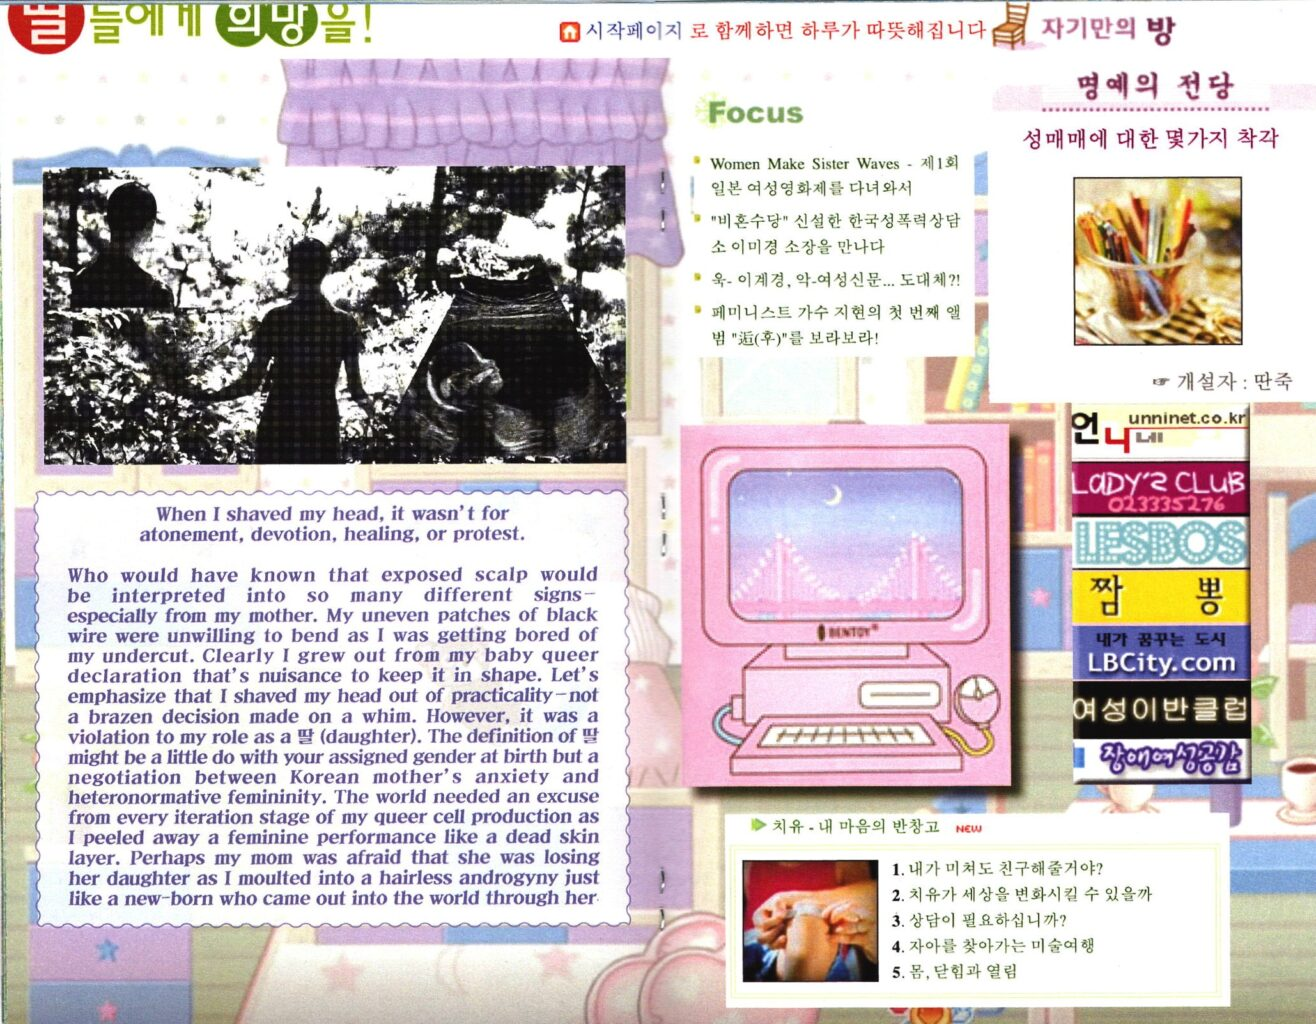 "A busy collage of images and texts in a variety of different colors. There is both English and Korean text. There is a black and white photograph that looks over processed, it is a montage of black silhouettes and a fetus in the womb amongst trees. There is a clip art image of a pink computer. Some text reads ""When I shaved my head it wasn't for atonement, devotion, healing, or protest."" Other readable English text includes badges/buttons that say Lady's Club, Lesbos, LBcity.com."